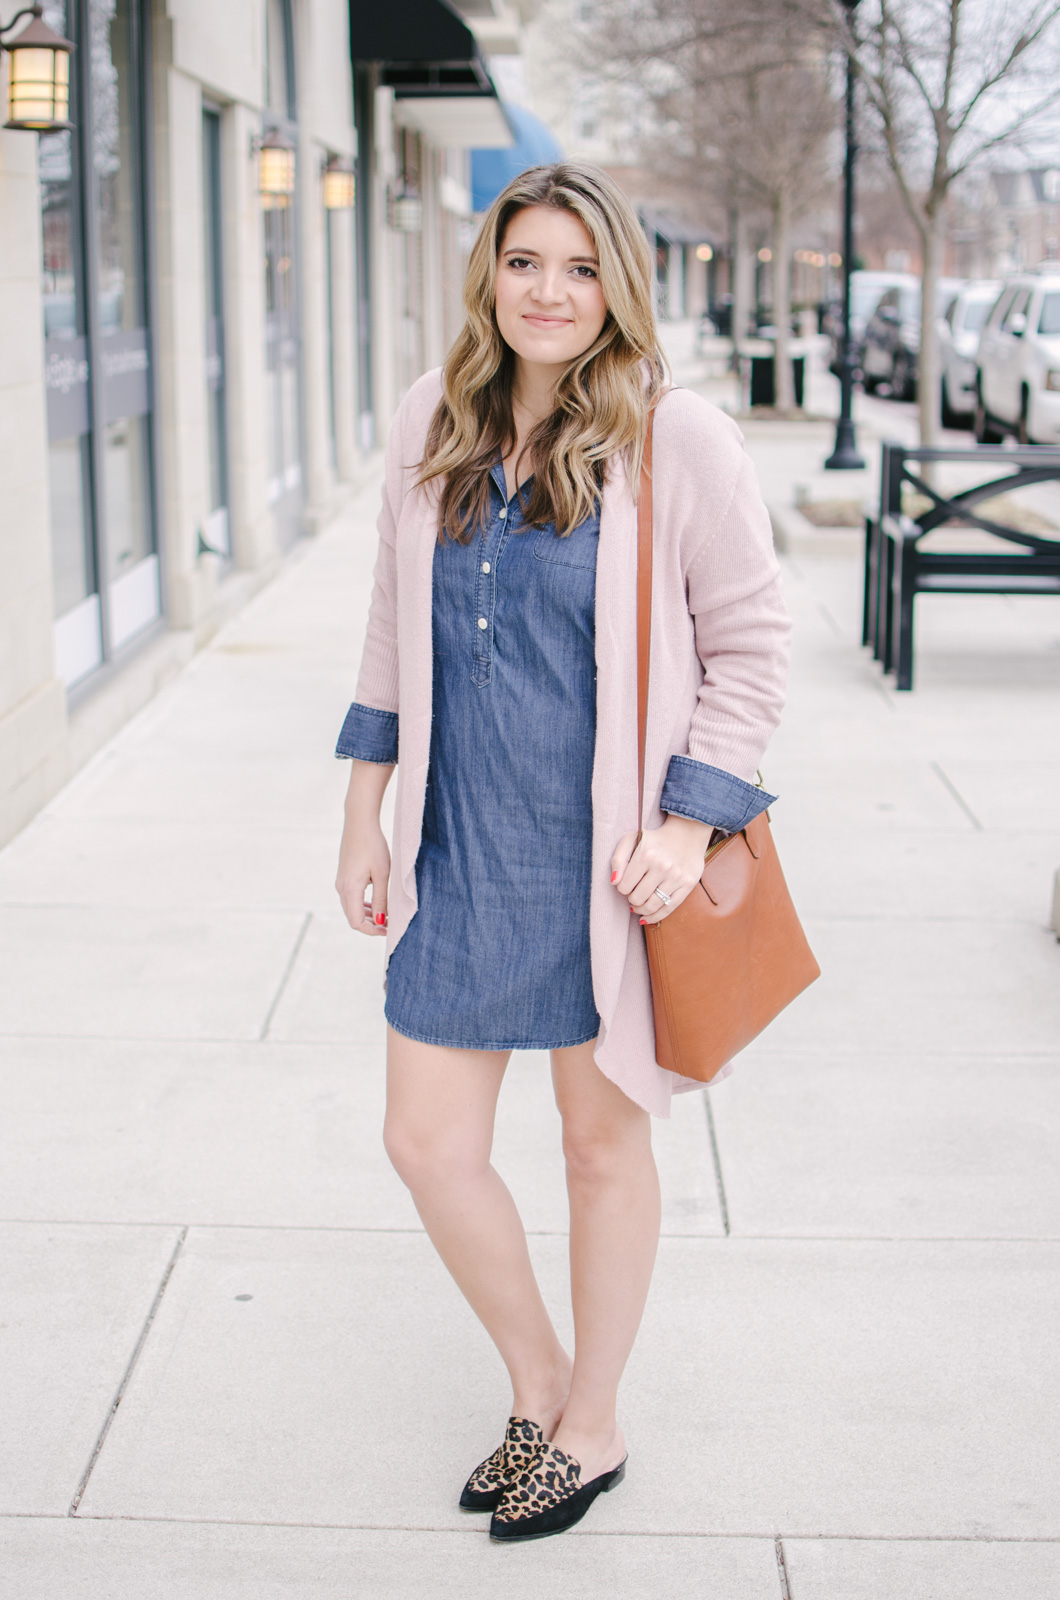 chambray dress and blush pink - the cutest spring chambray dress outfit | bylaurenm.com